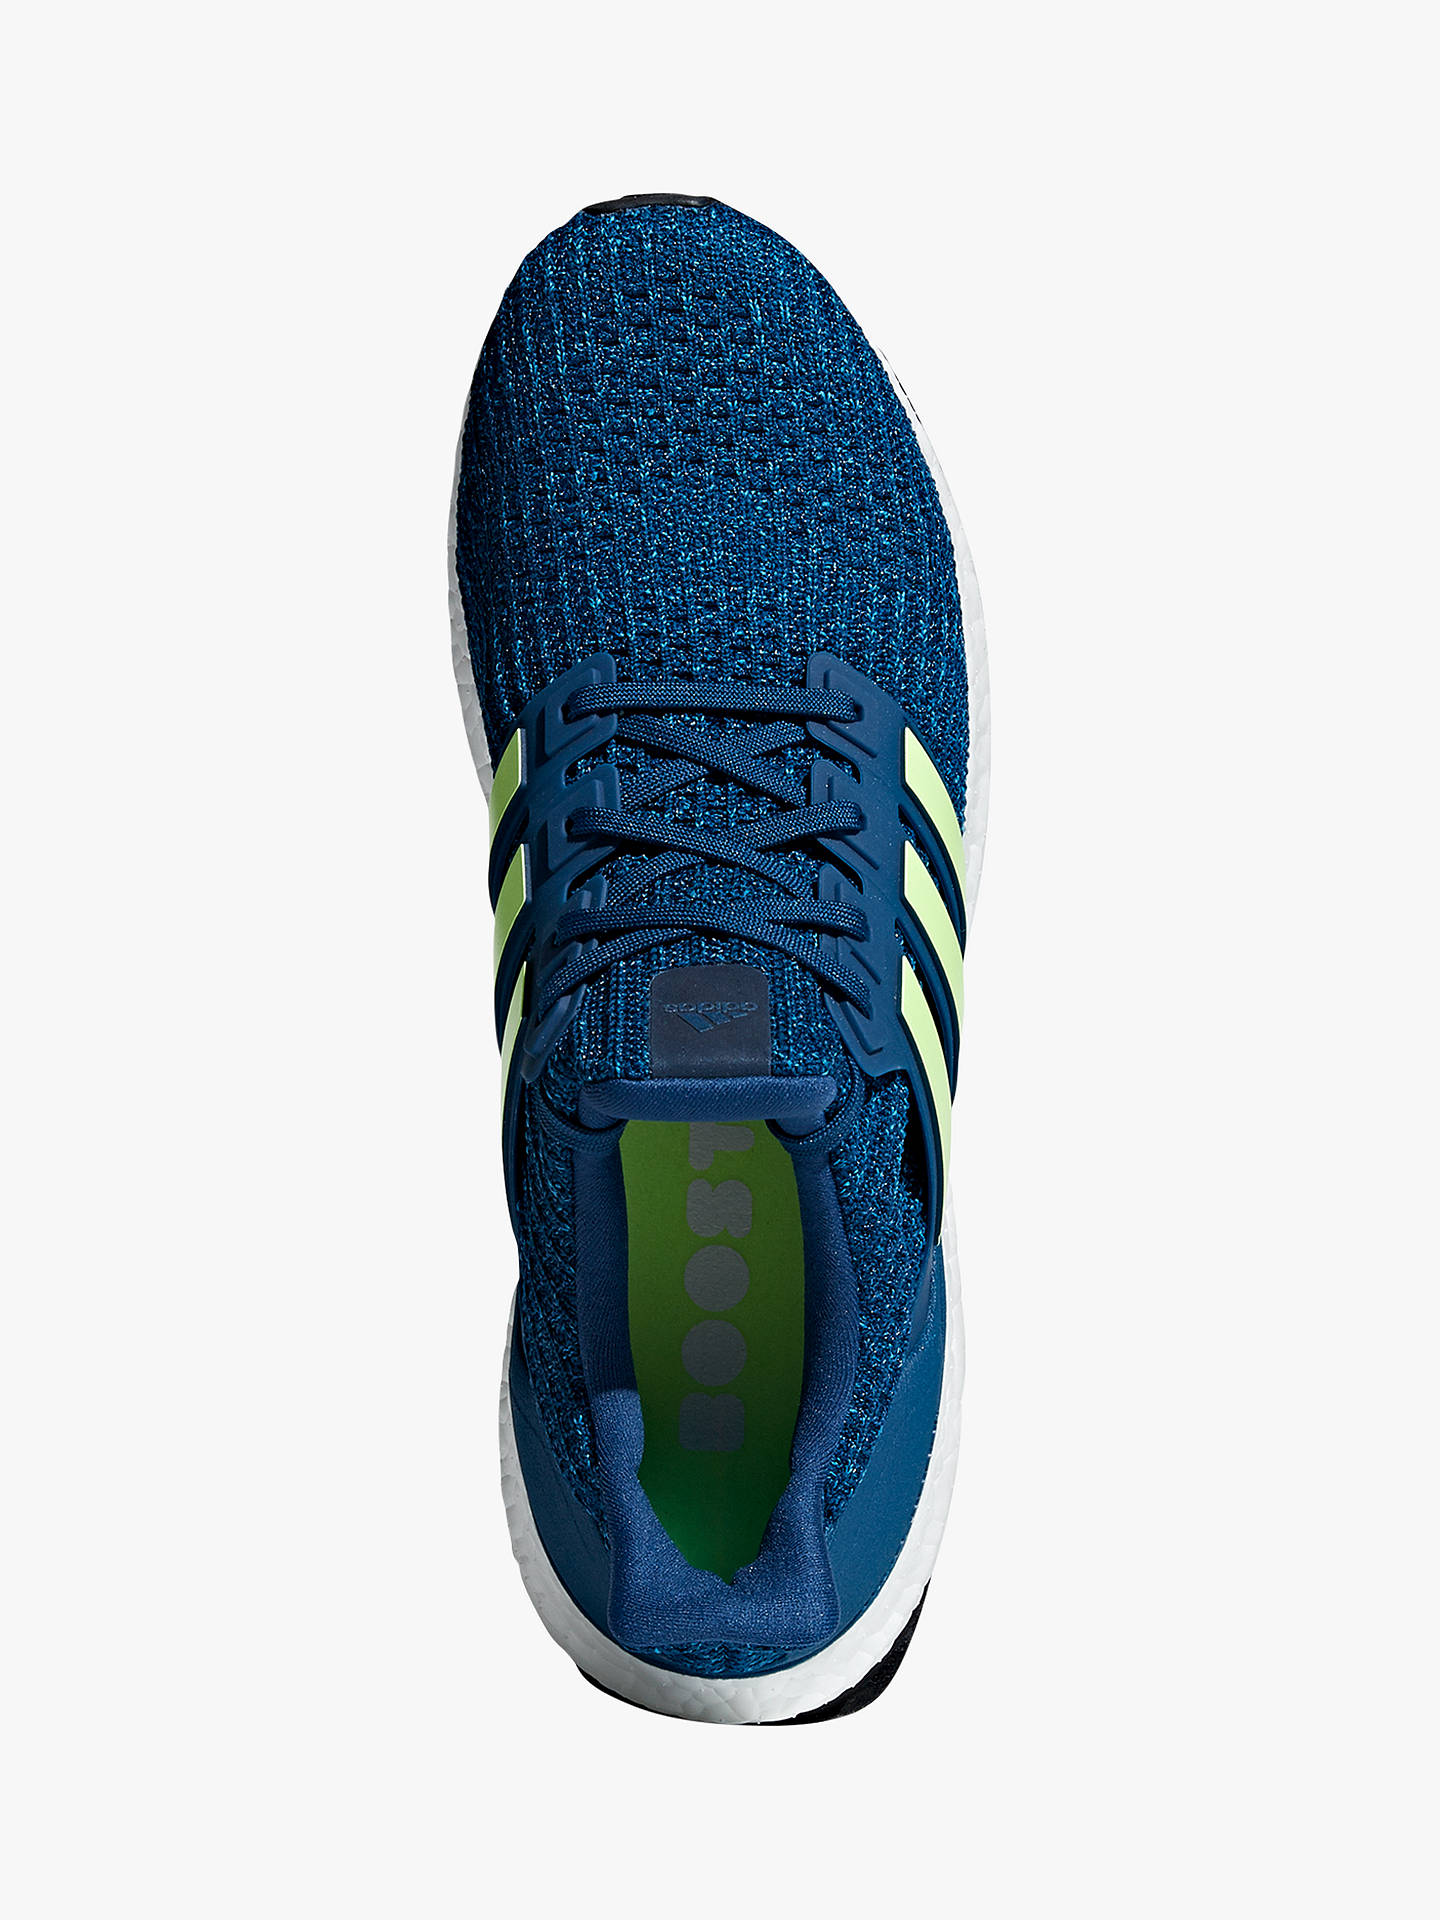 060a9167c adidas UltraBOOST Men s Running Shoes at John Lewis   Partners